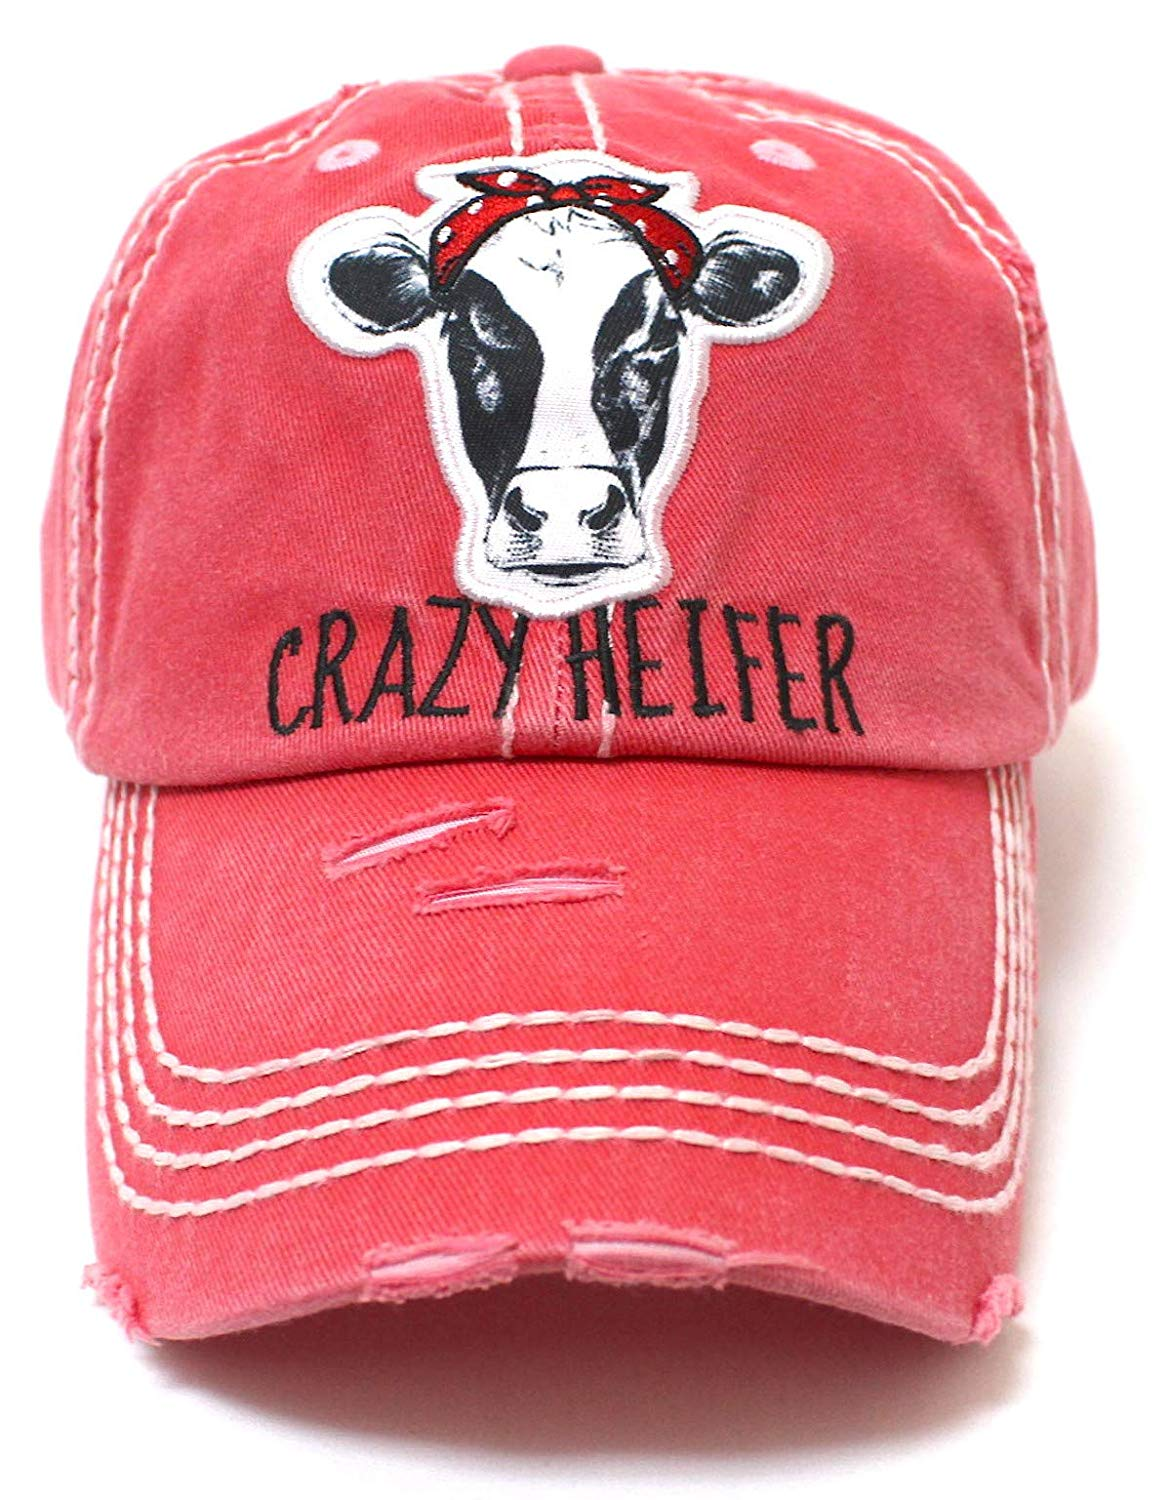 10e1c27243de18 CAPS 'N VINTAGE Rose Pink Crazy Heifer Cow Patch Embroidery Hat - Caps 'N